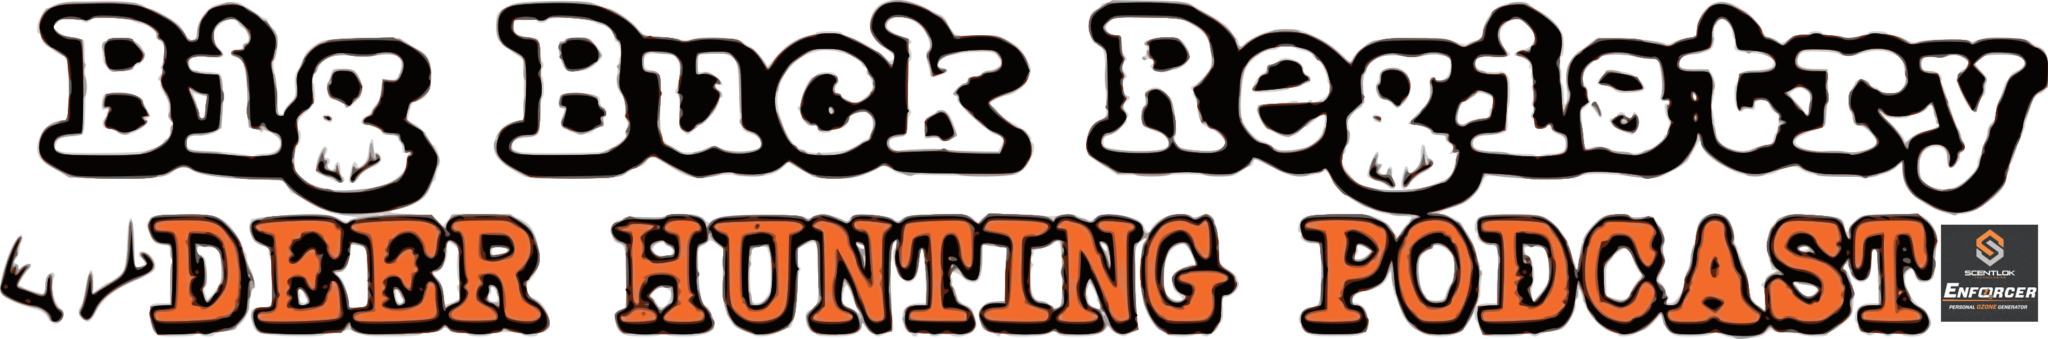 Deer Hunting Podcast | Huff Land Company